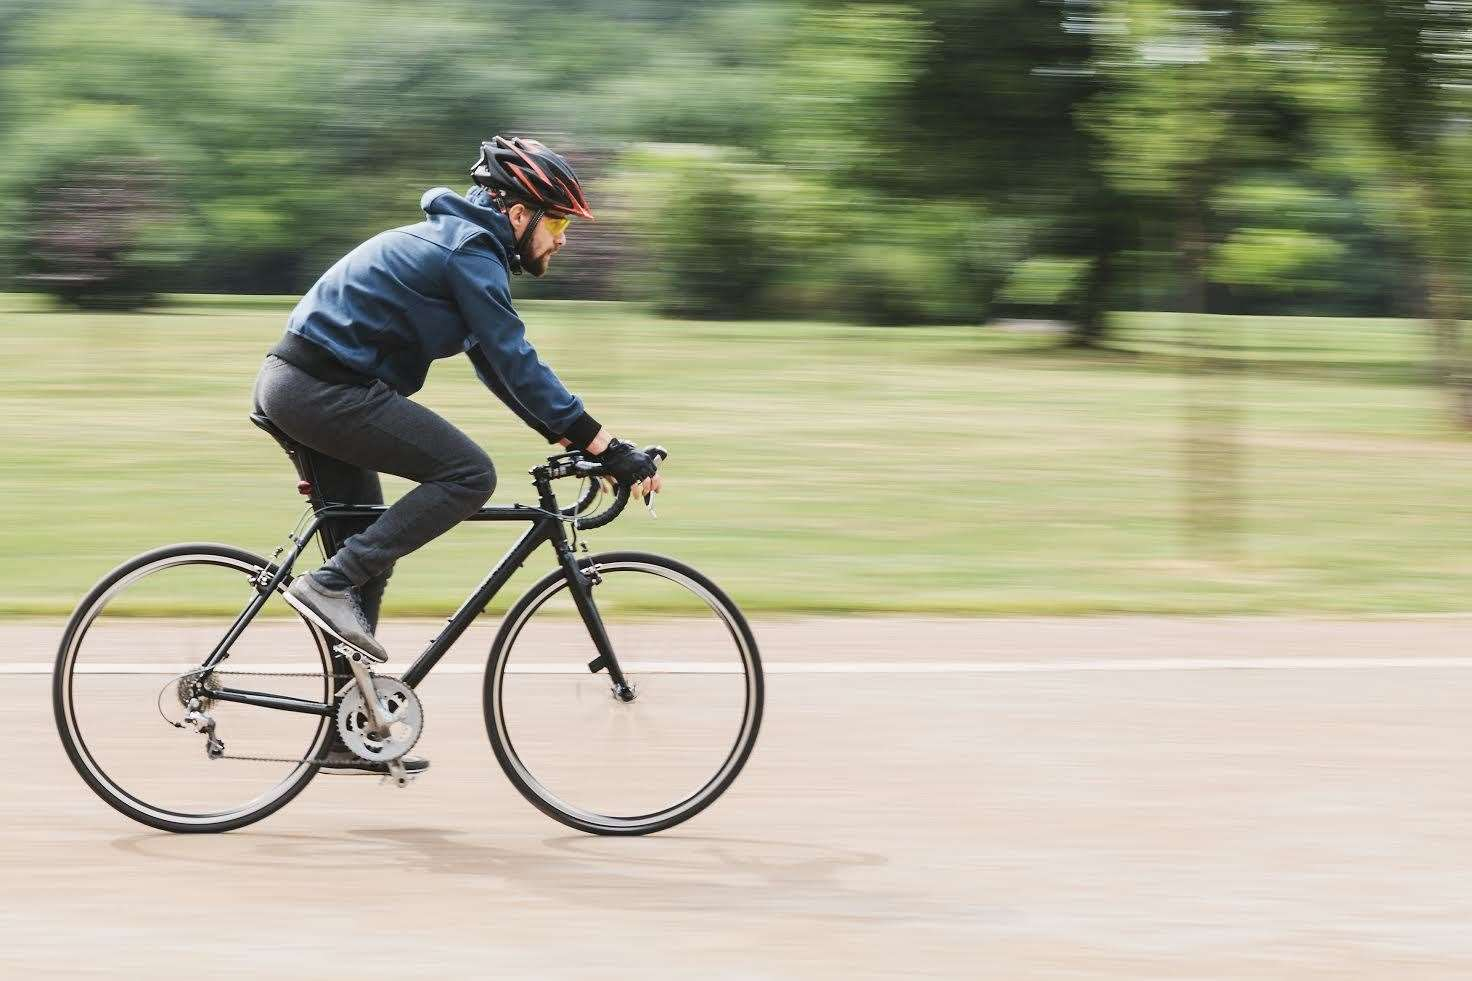 Diabetes UK are looking for cyclists across Grampian